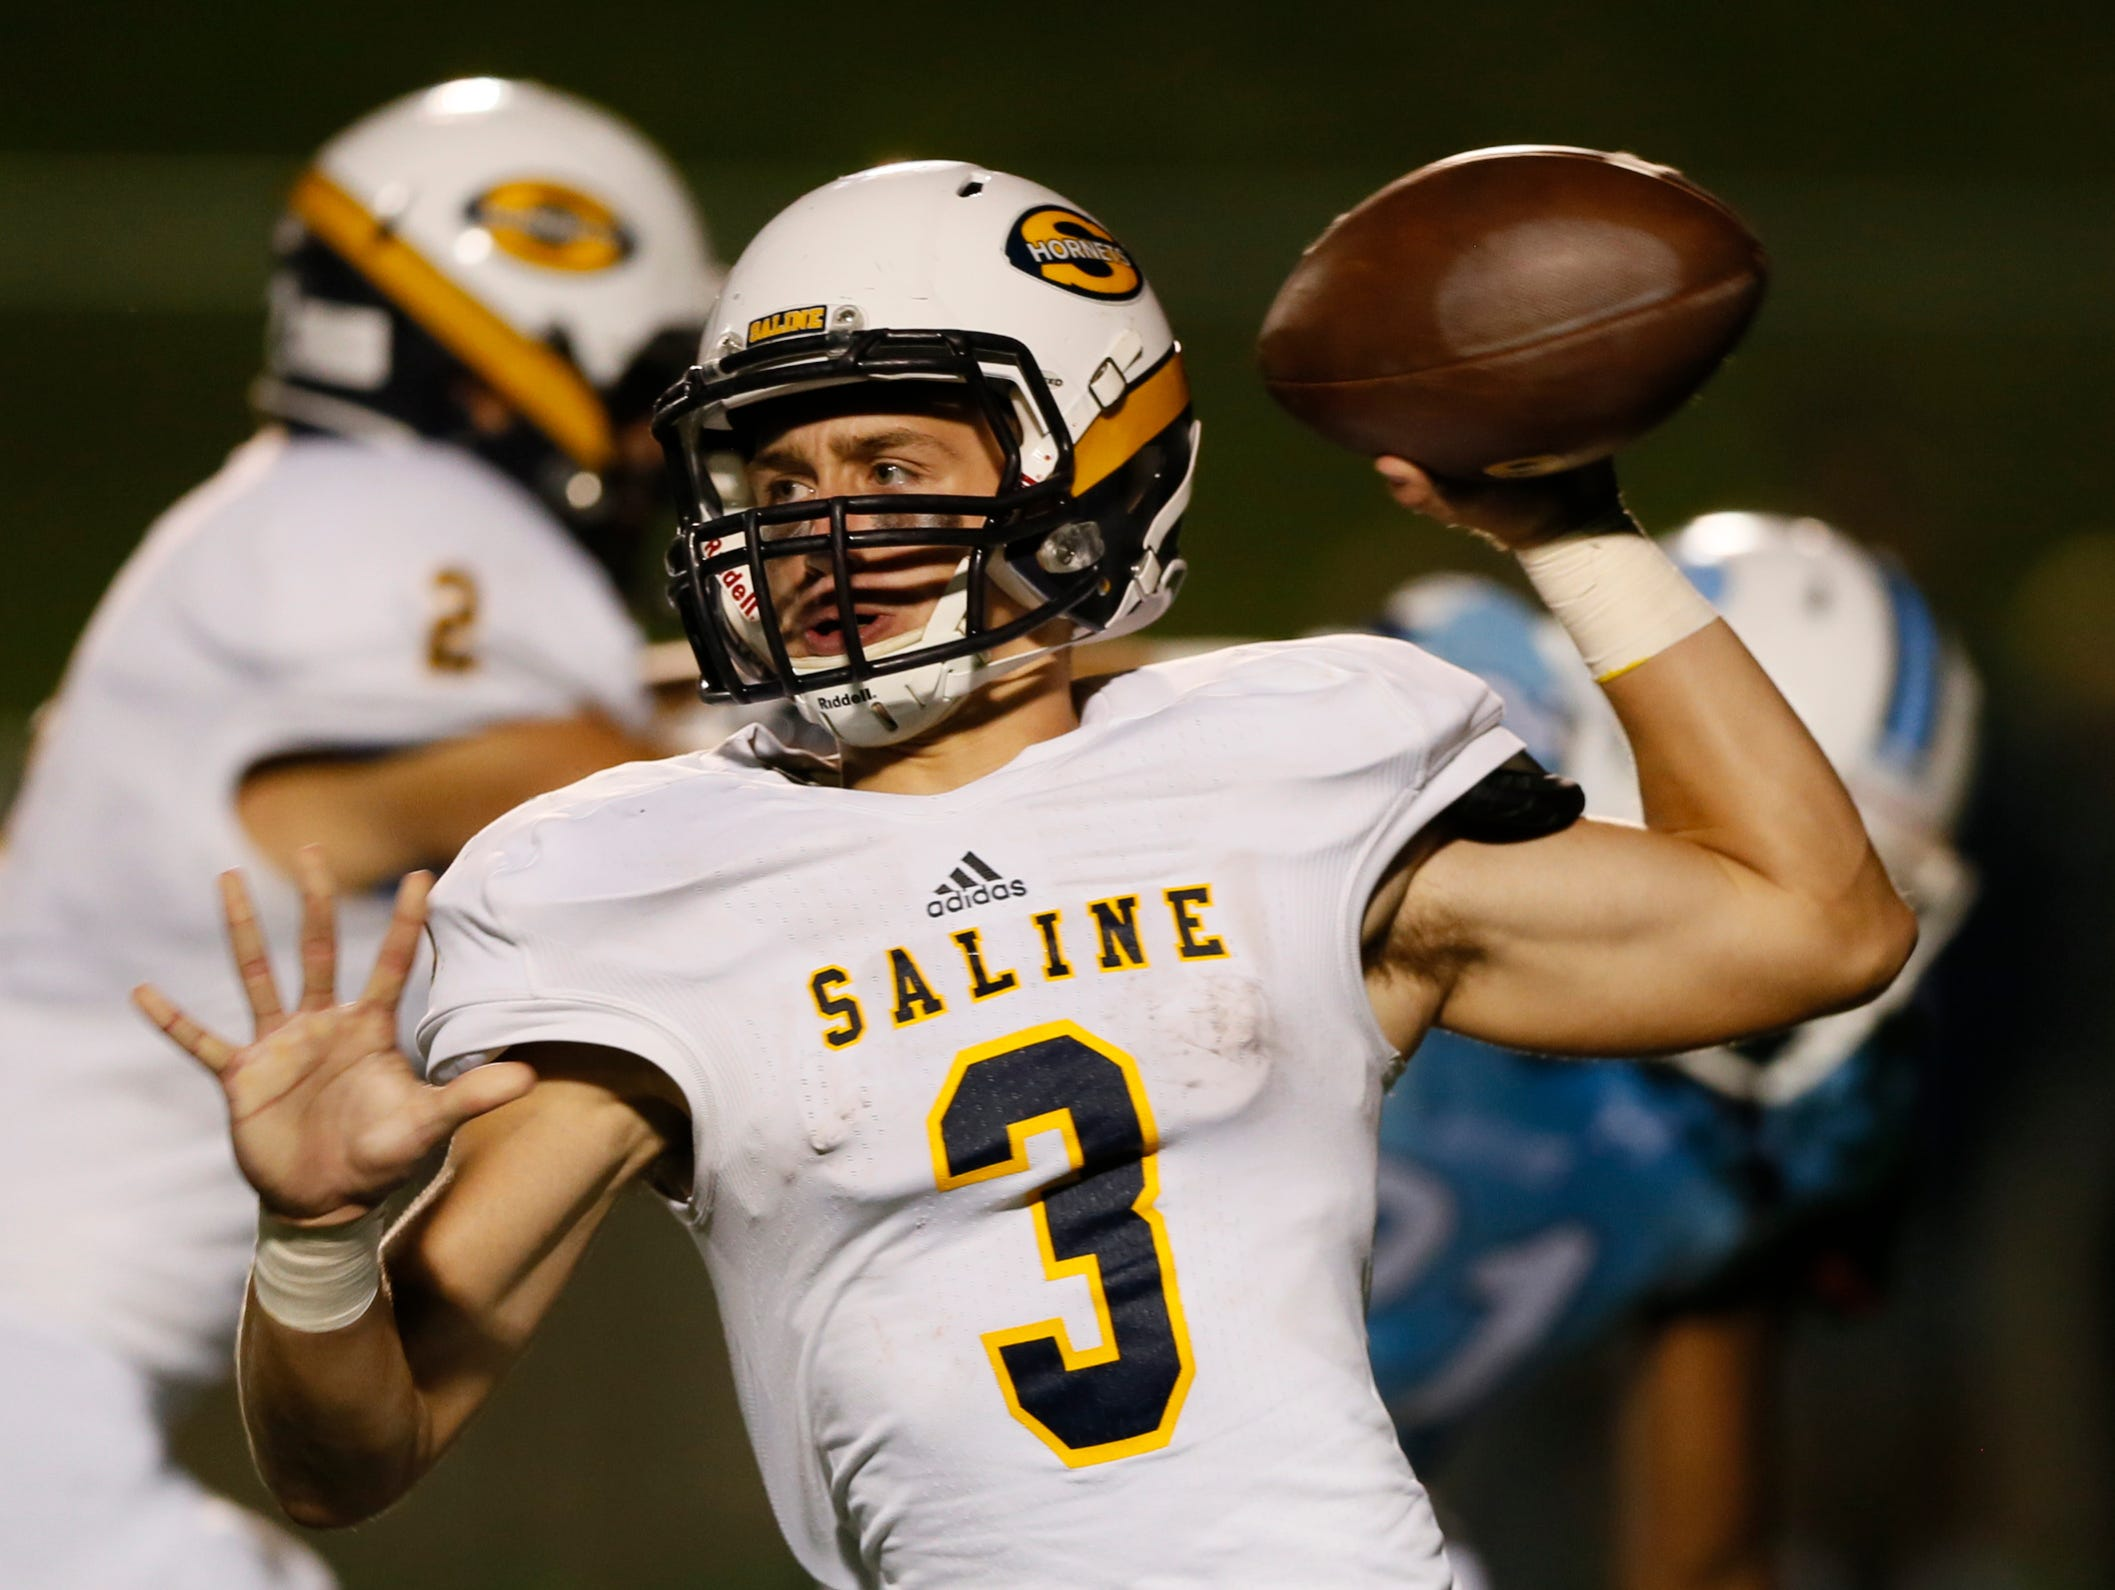 Saline's Zach Schwartzenberger comes in to play quarterback late in the third quarter against Ann Arbor Skyline on Sept. 11, 2015. Saline won 45-6.